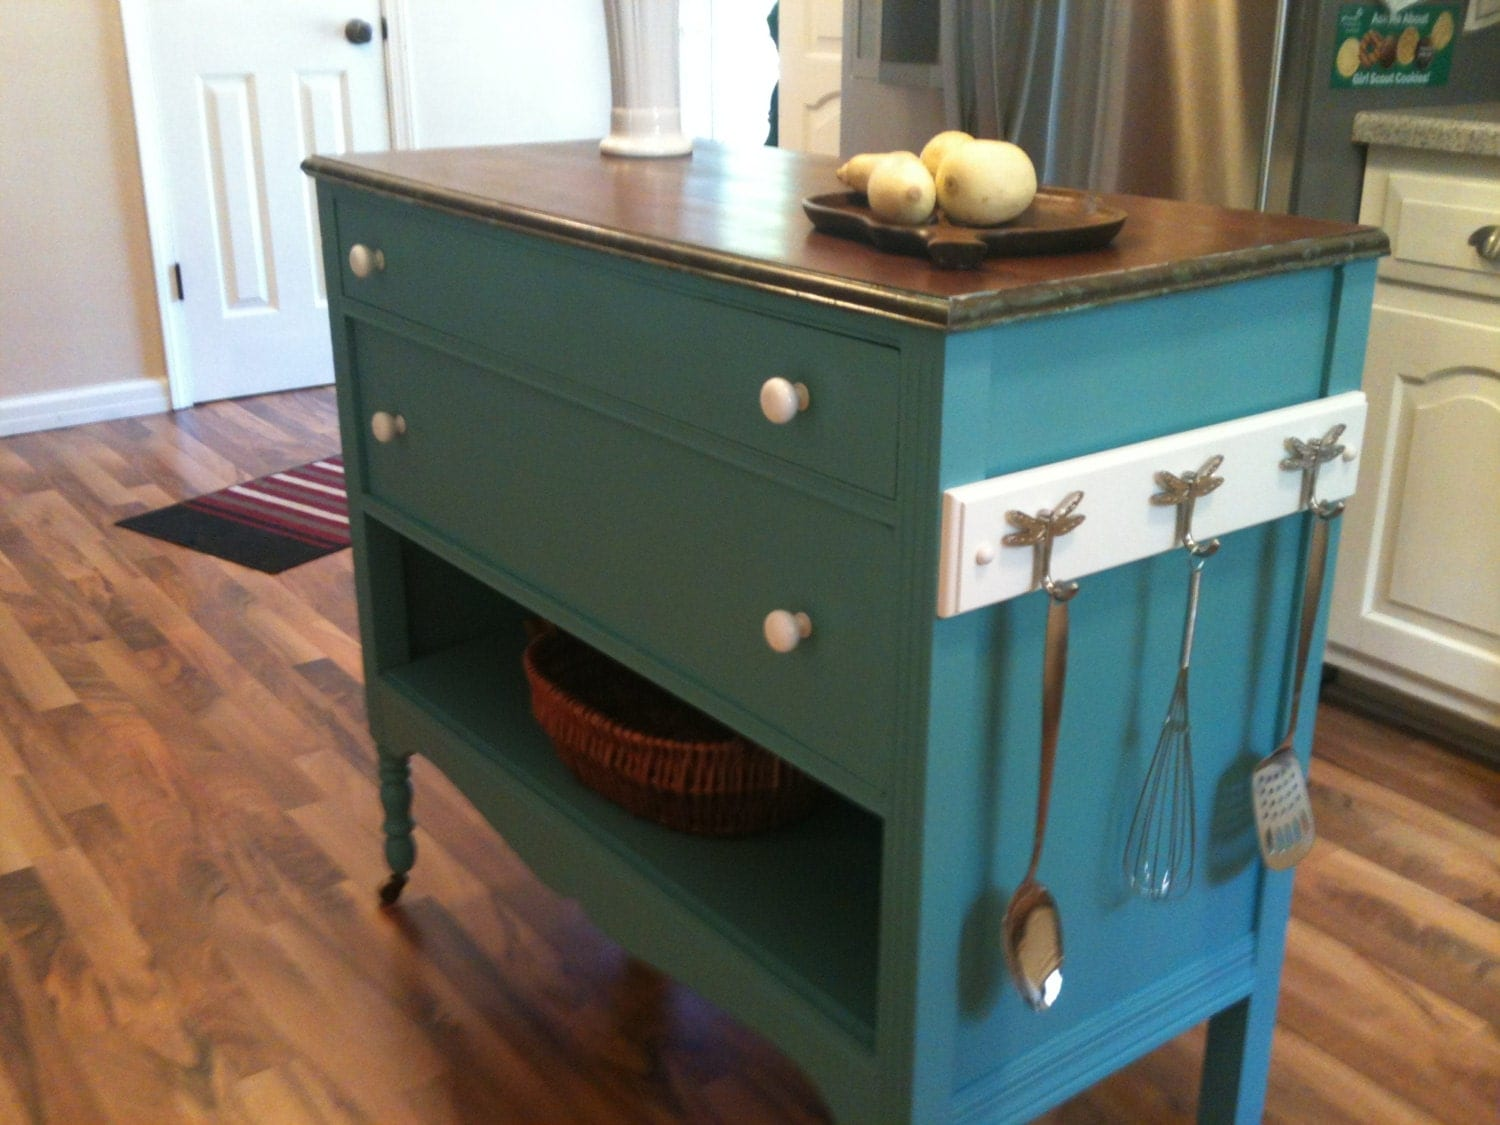 Repurposed Upcycled Dresser Made Into Charming Turquoise Aqua